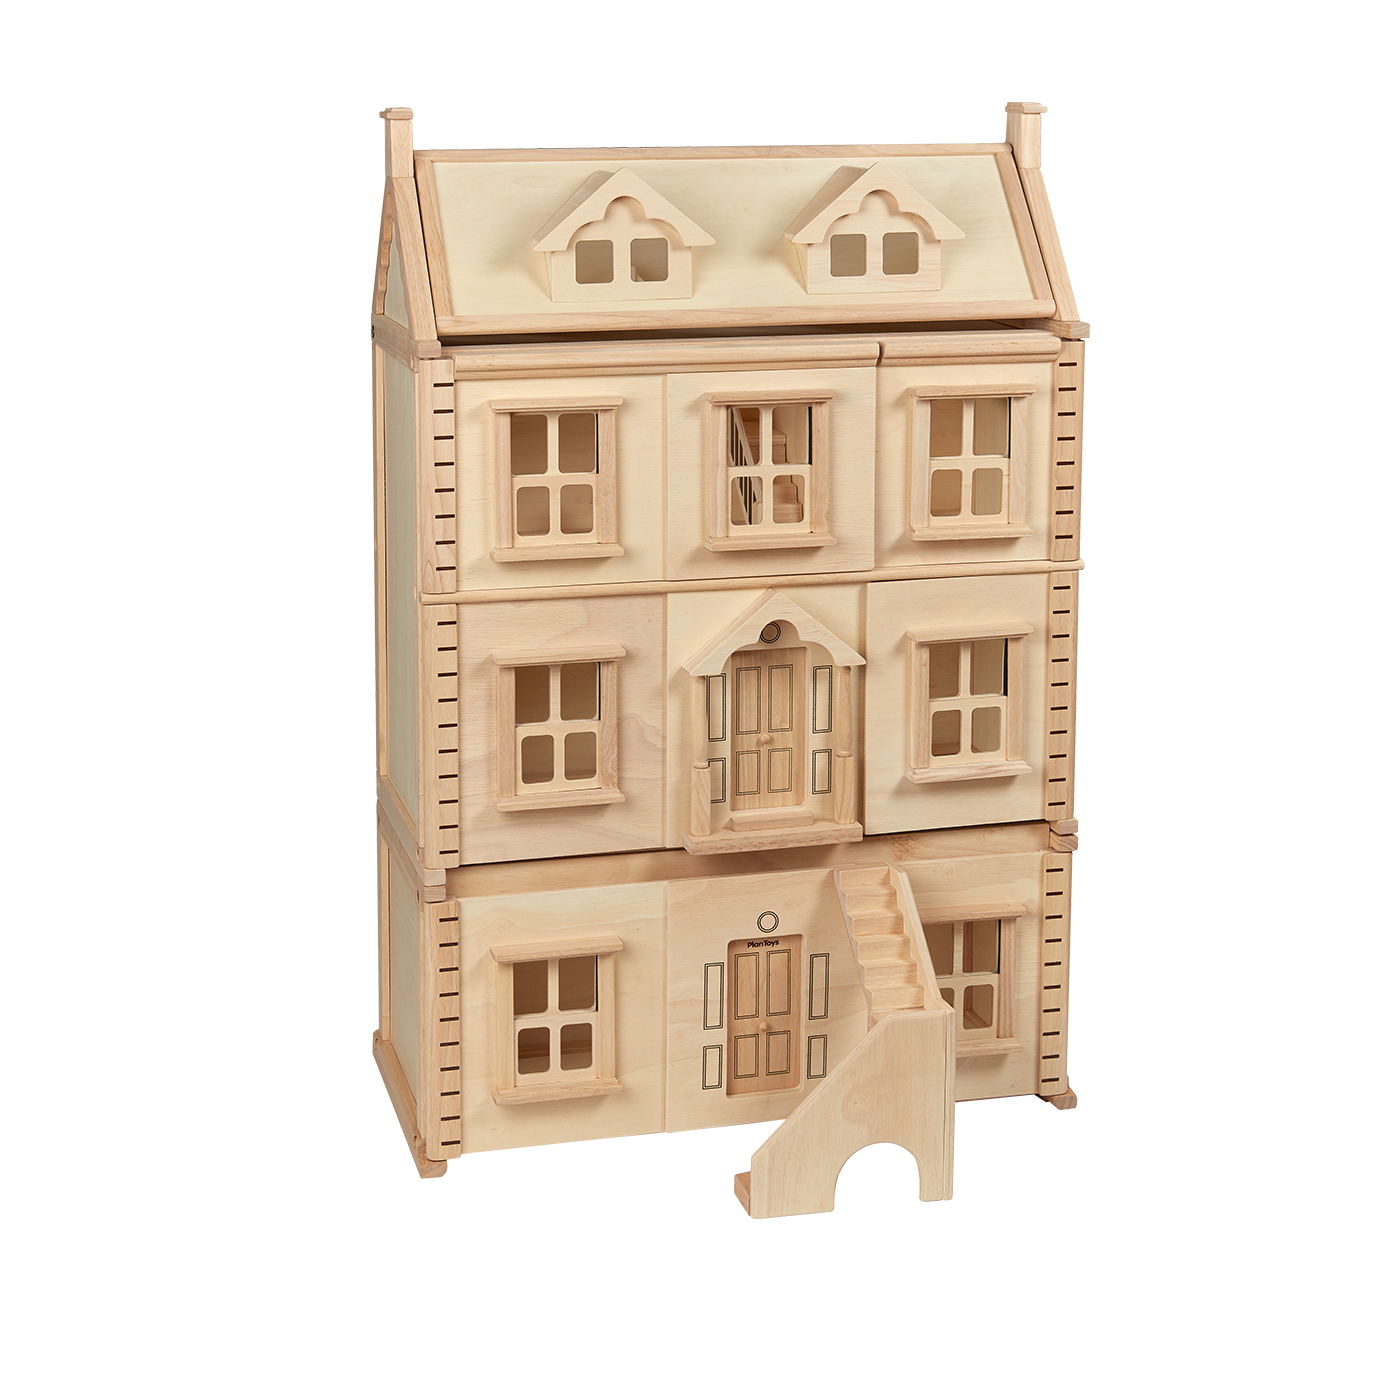 7338_PlanToys_VICTORIAN_DOLLHOUSE__-_BASEMENT_FLOOR_Pretend_Play_3yrs_Emotion_Imagination_Social_Coordination_Wooden_toys_Education_toys_Safety_Toys_Non-toxic_0.png